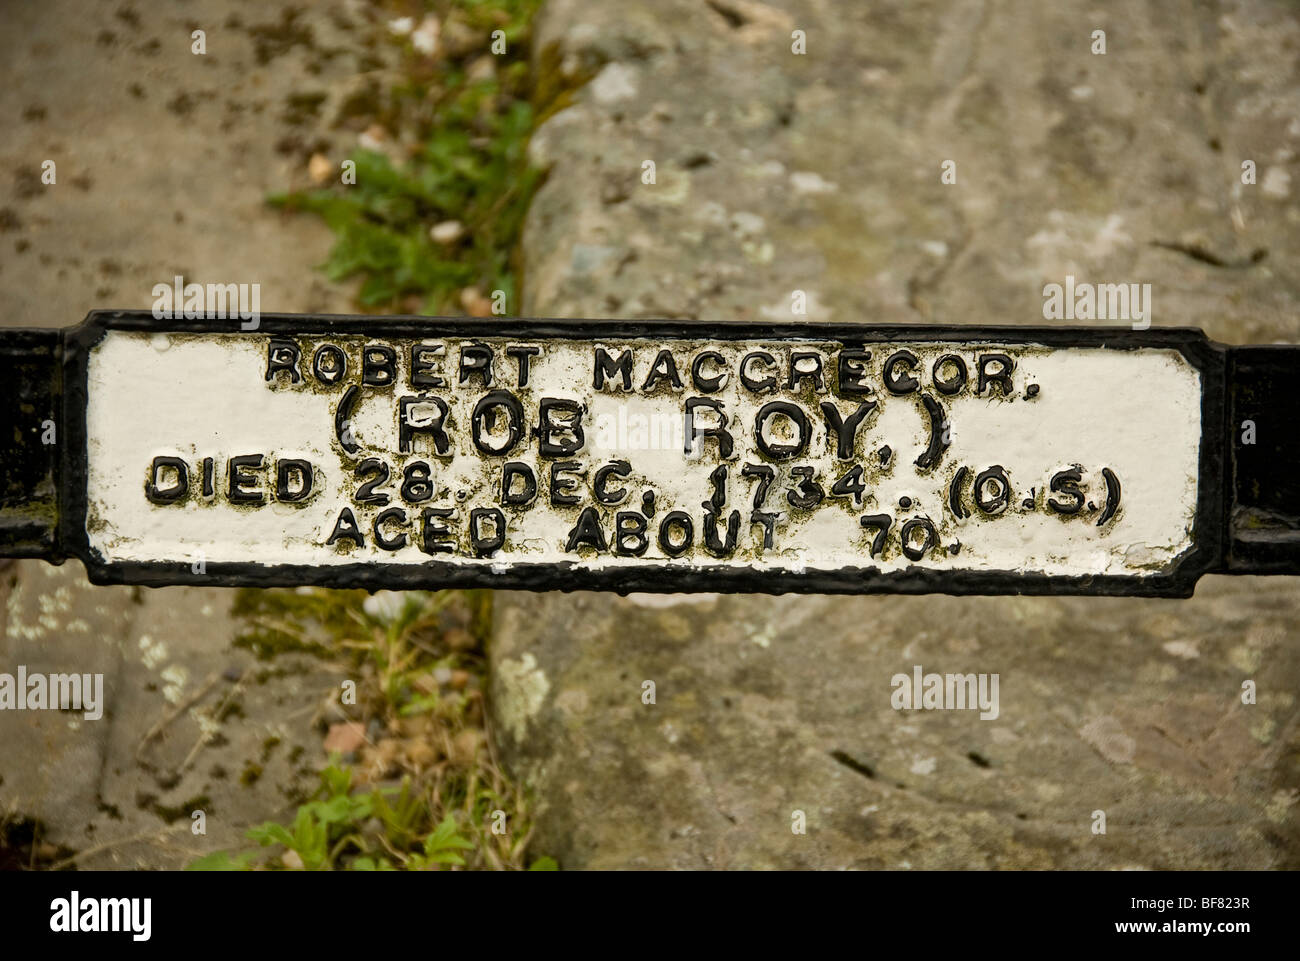 Robert MacGregor's (Rob Roy) Name plaque on family grave Stock Photo